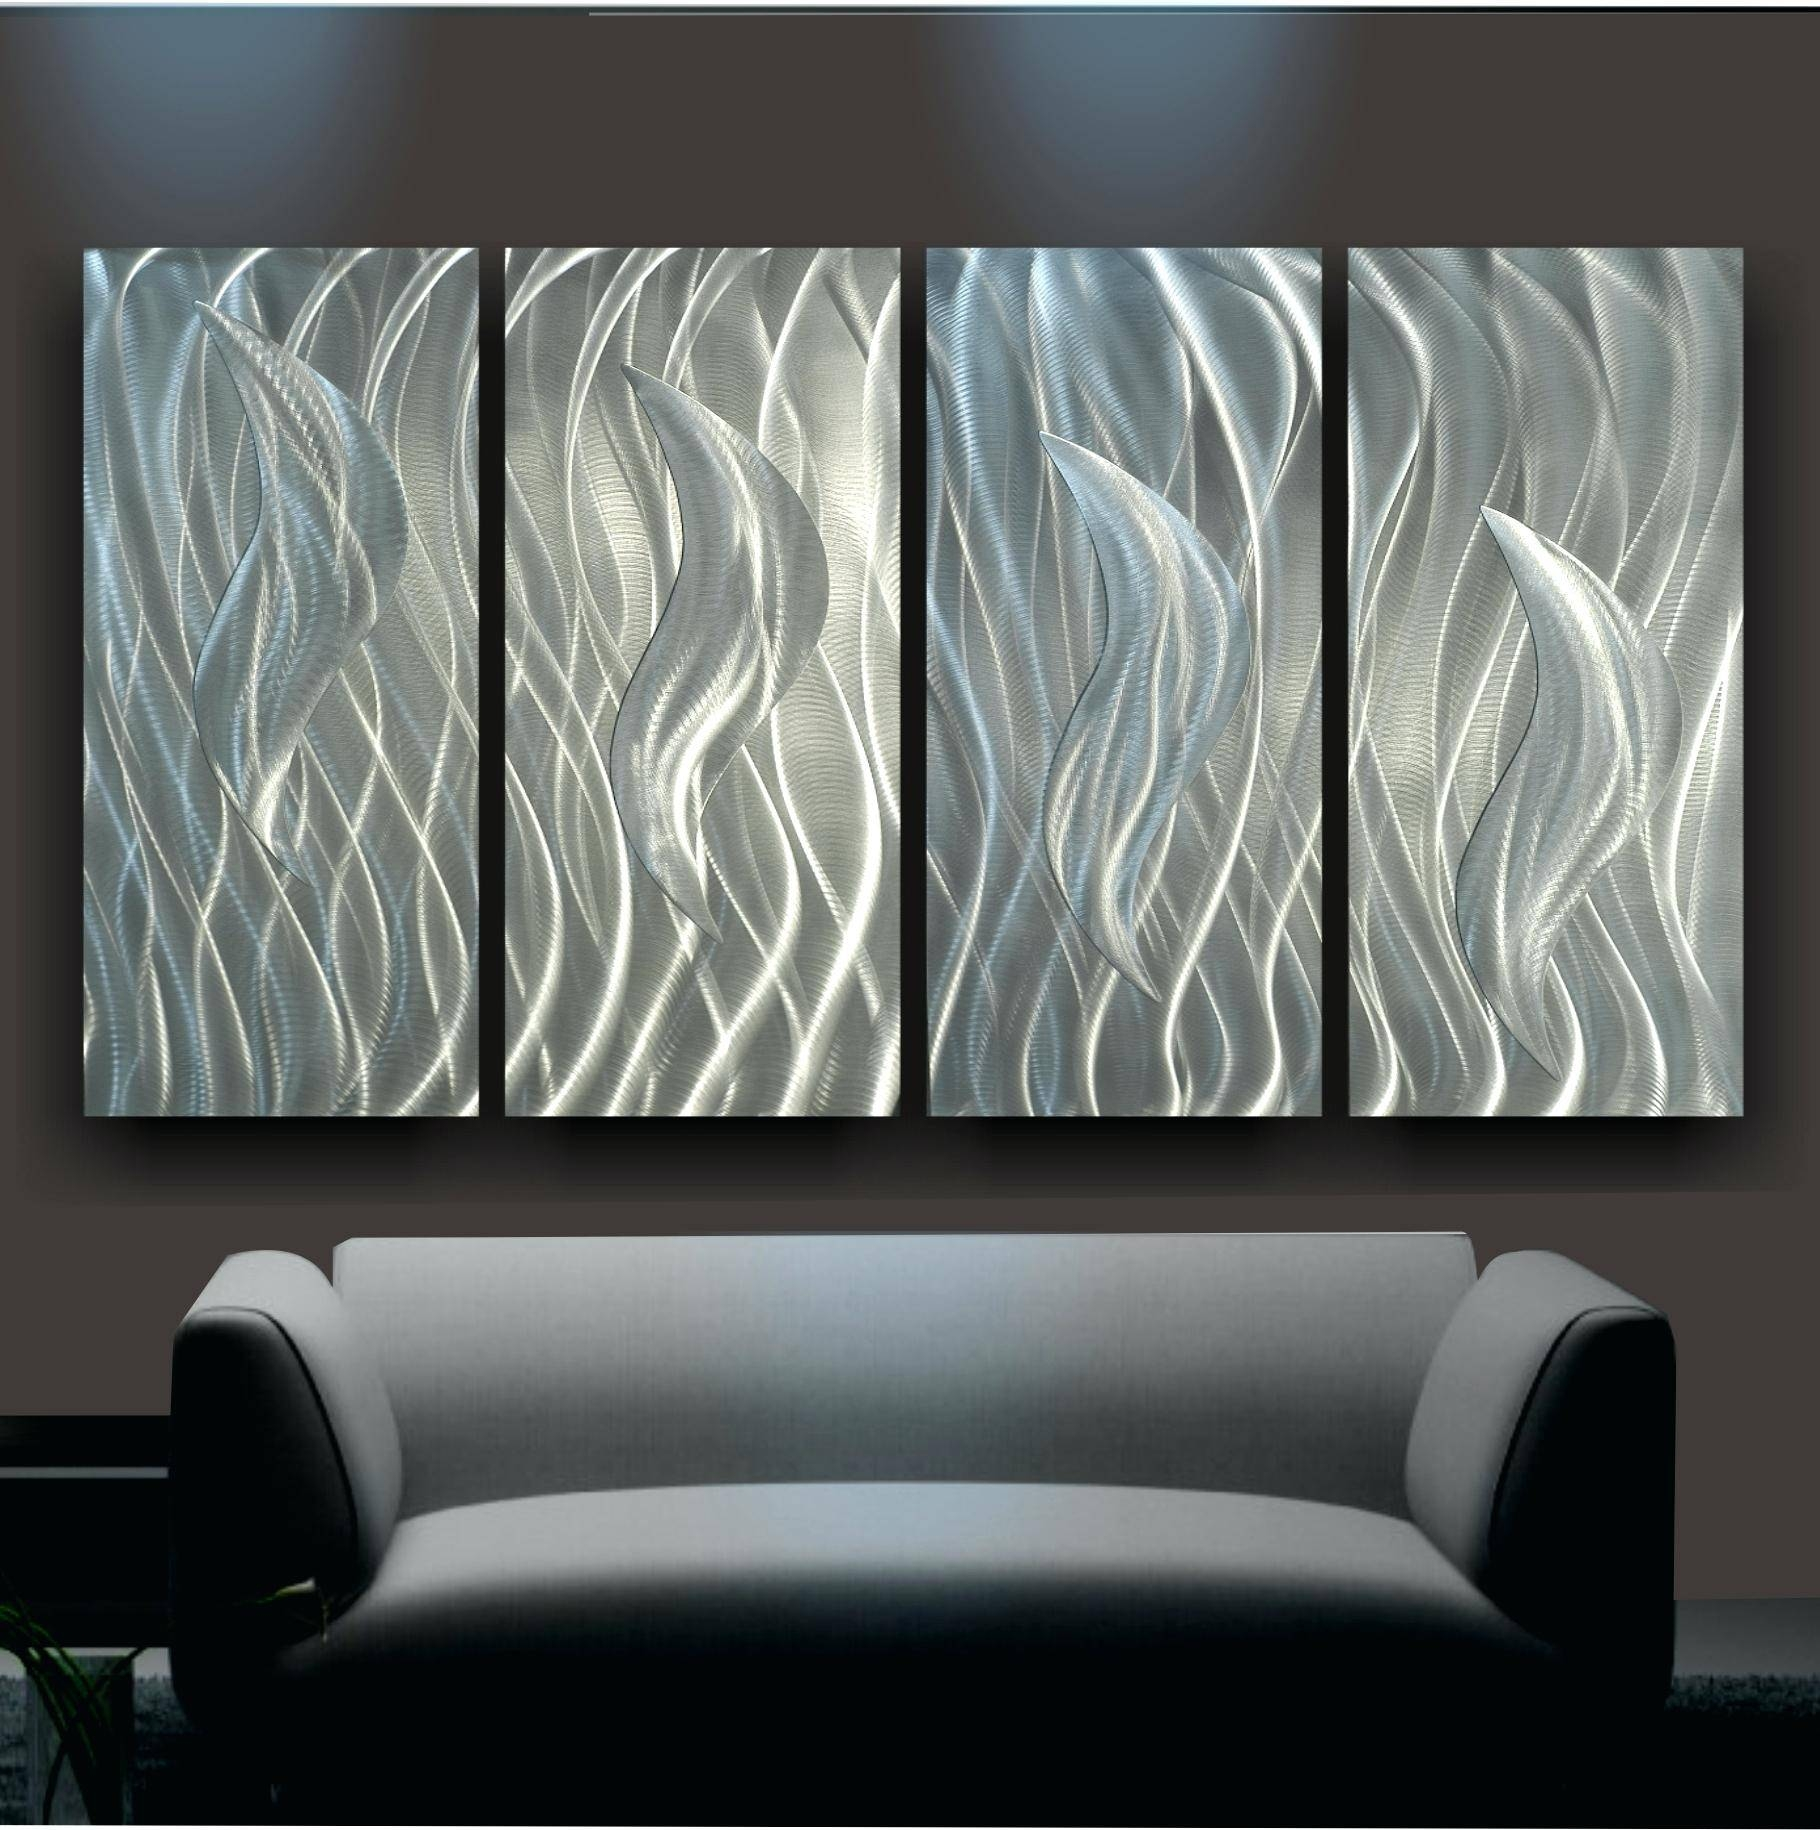 Wall Decor : Wall Design Zoom 119 Cozy Zoom Mesmerizing Art And Intended For Most Up To Date Art Deco Metal Wall Art (View 17 of 20)